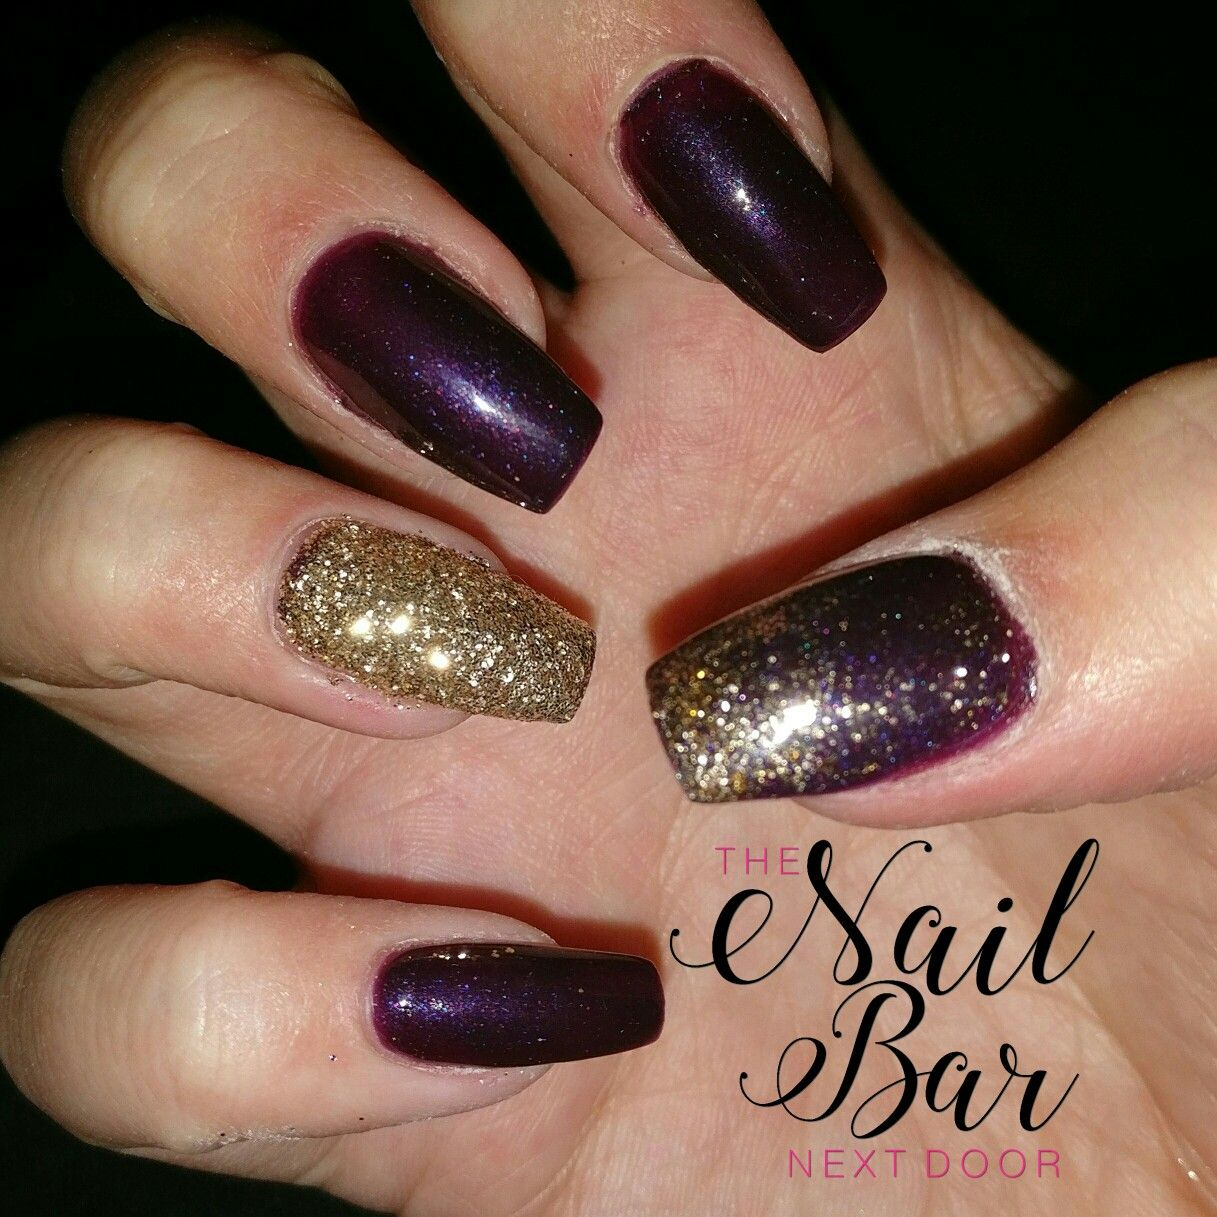 Nail Art Ideas purple and gold nail art : My Christmas nails. Deep purple acrylic nails with gold glitter ...